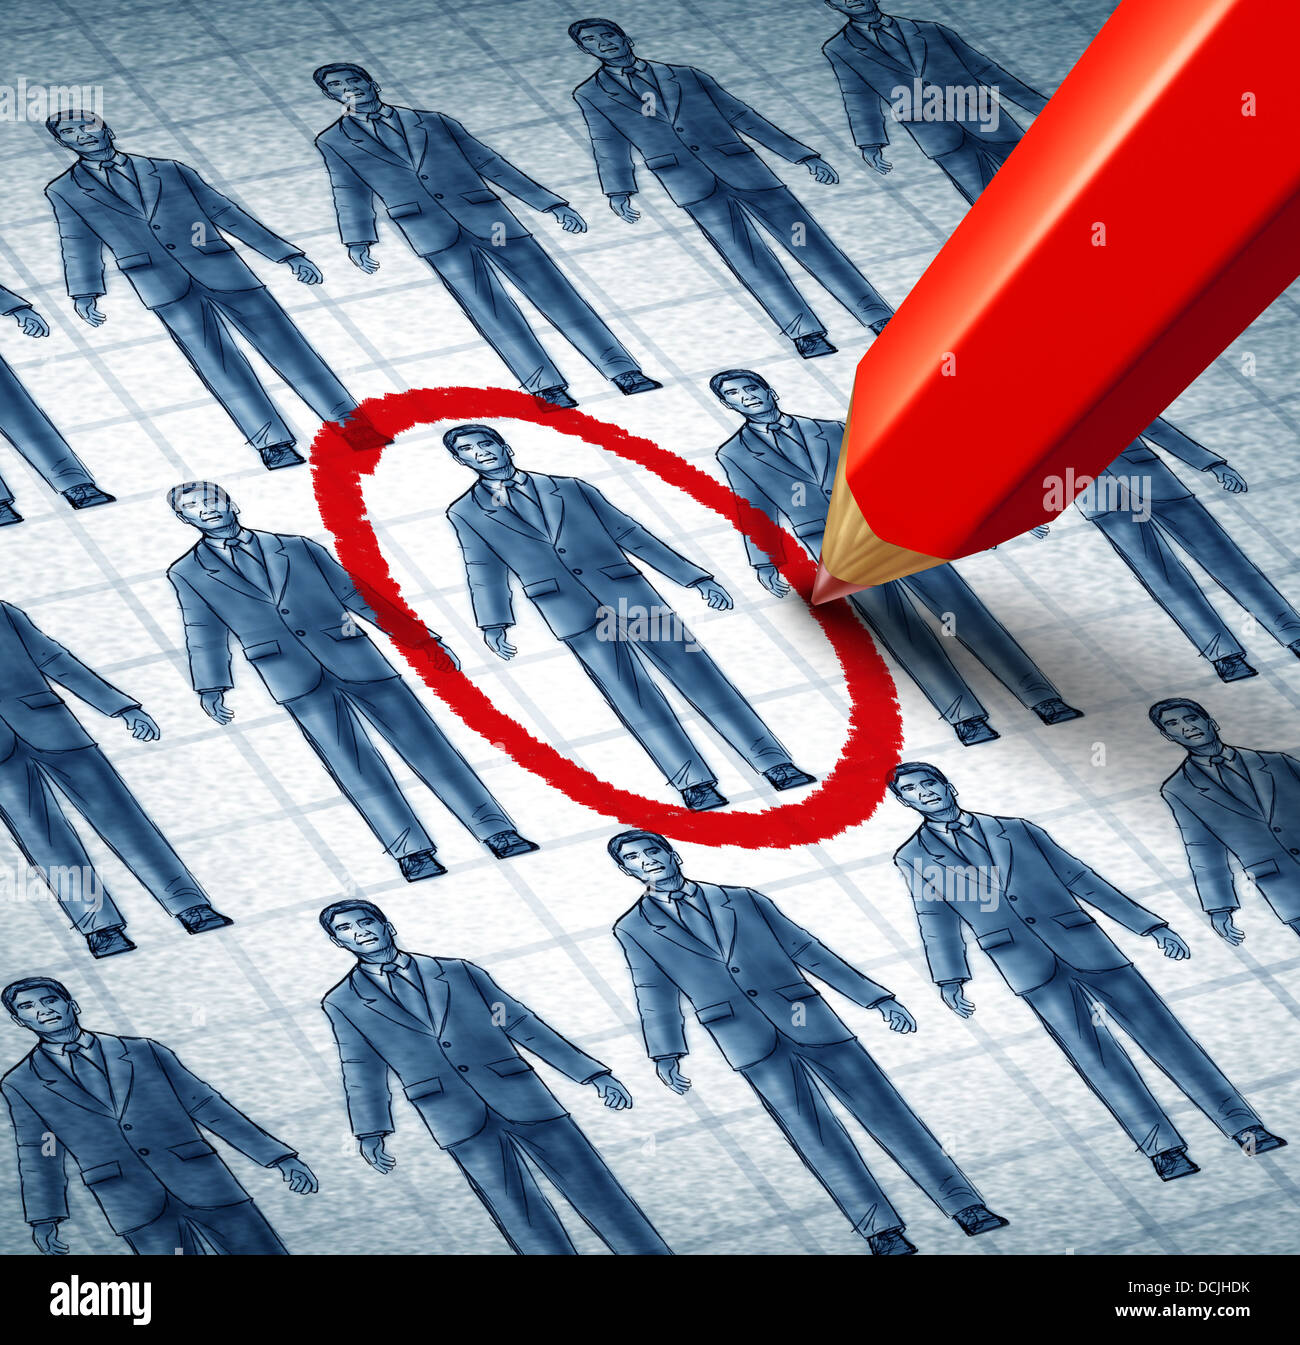 Career search and job searching hiring the right candidate as an employment concept with drawings of businessmen - Stock Image